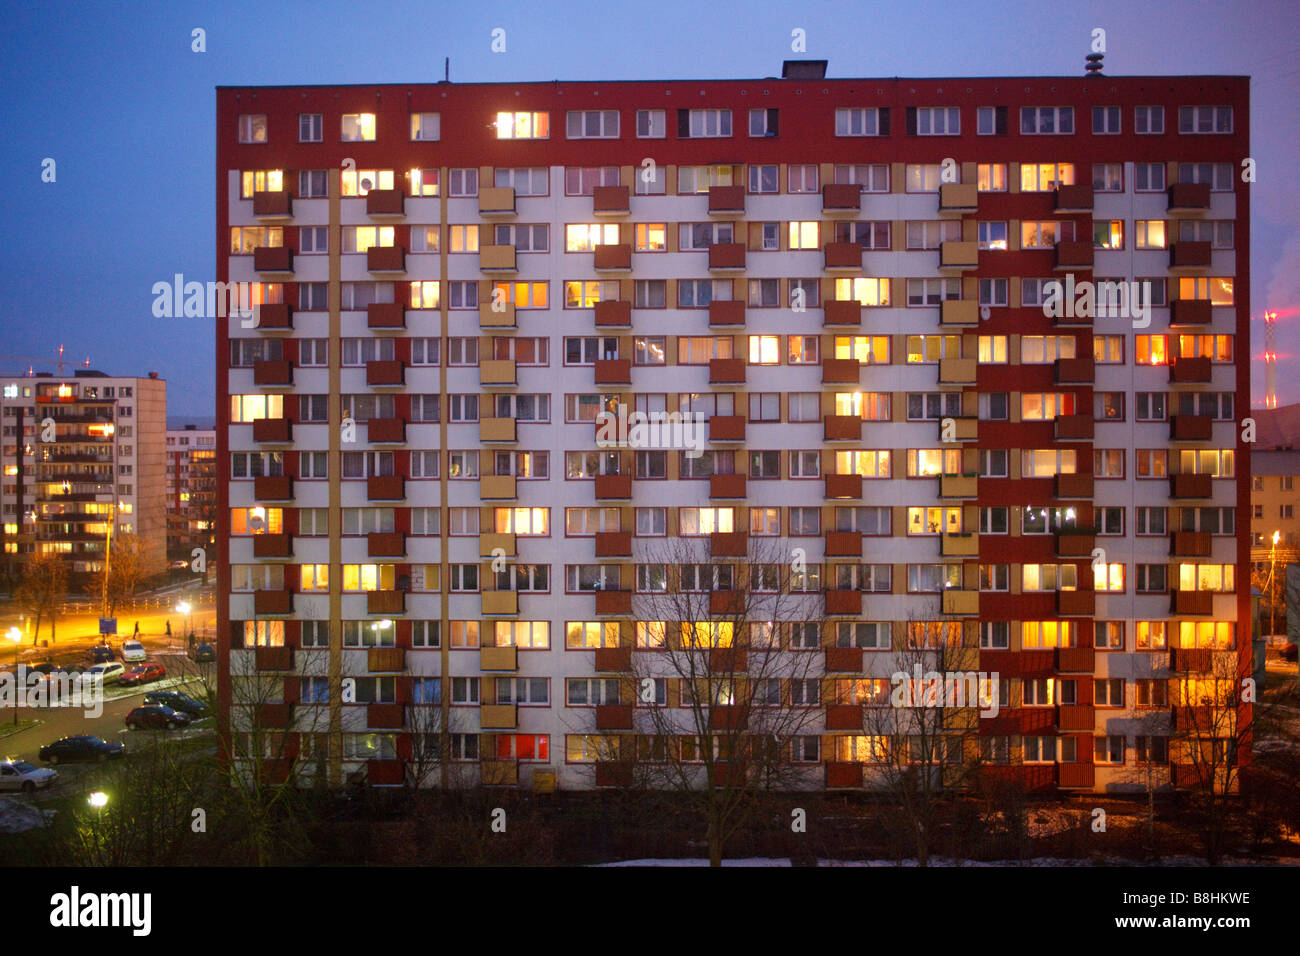 Socialist highrise blocks from the end of 70s in Bialystok in Eastern Poland - Stock Image